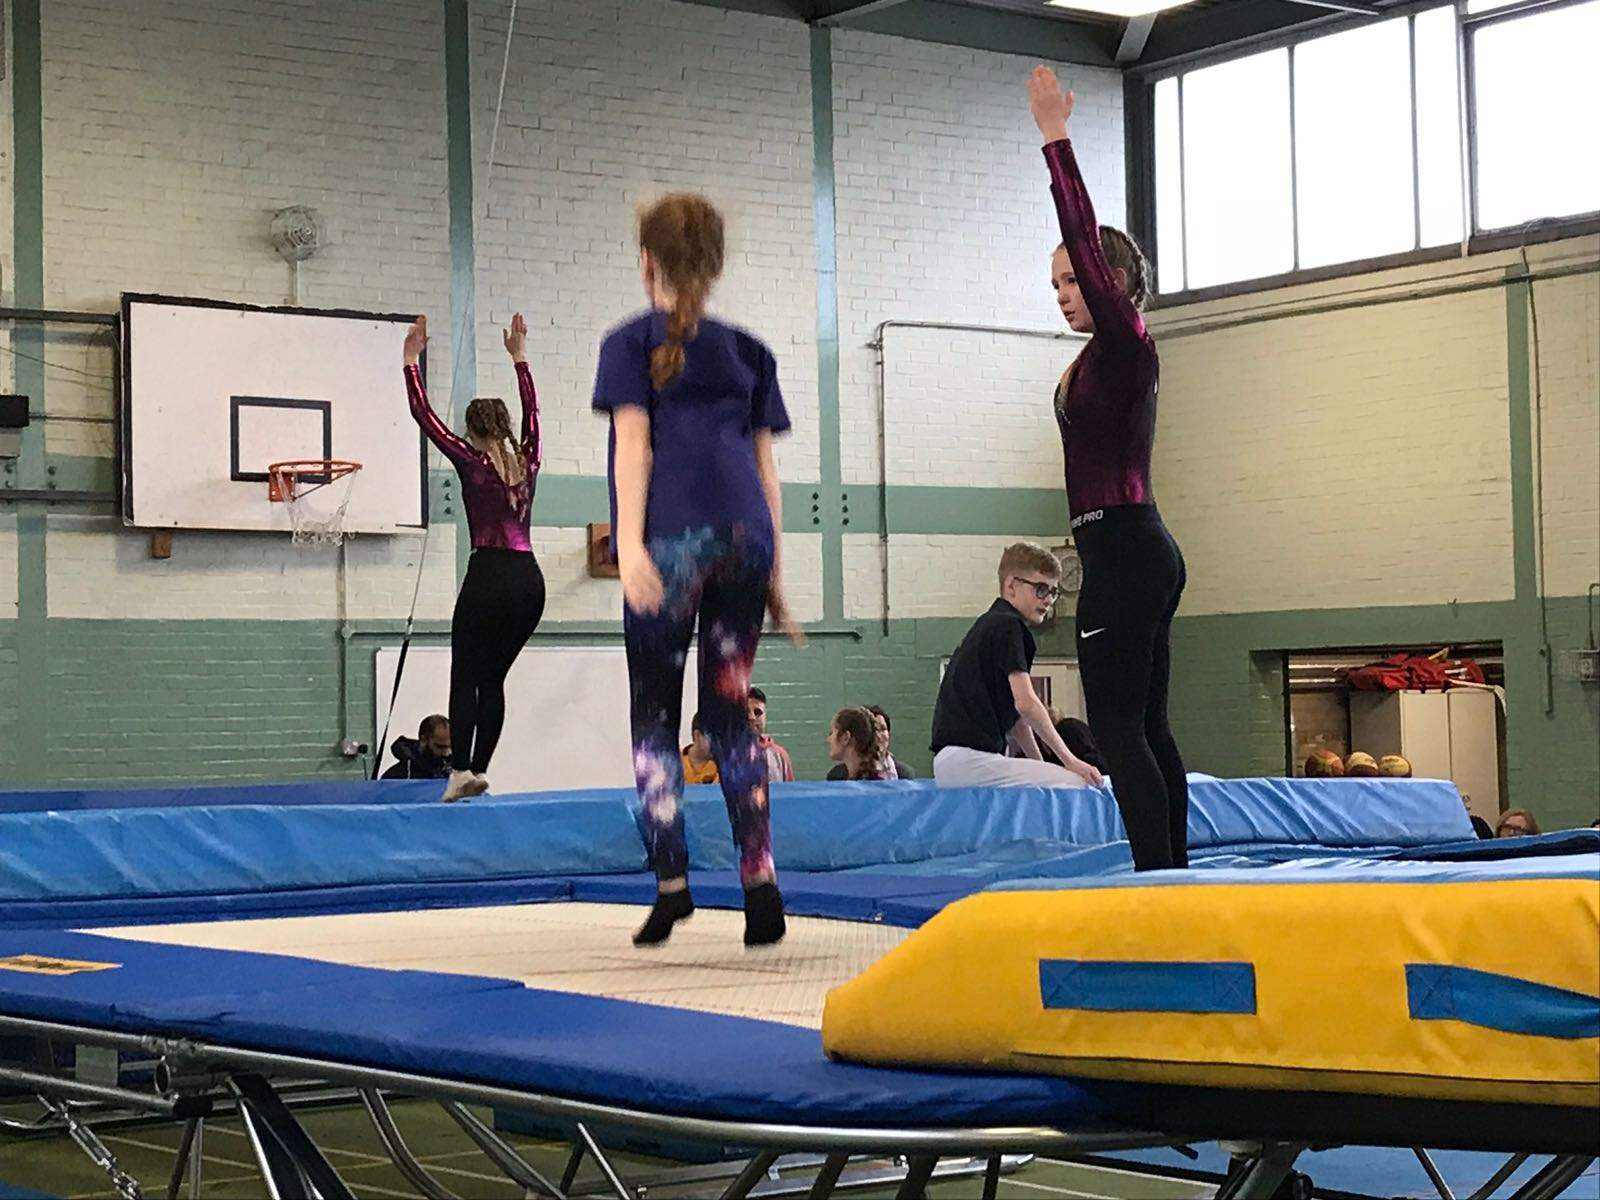 Market Harborough Trampoline Academy